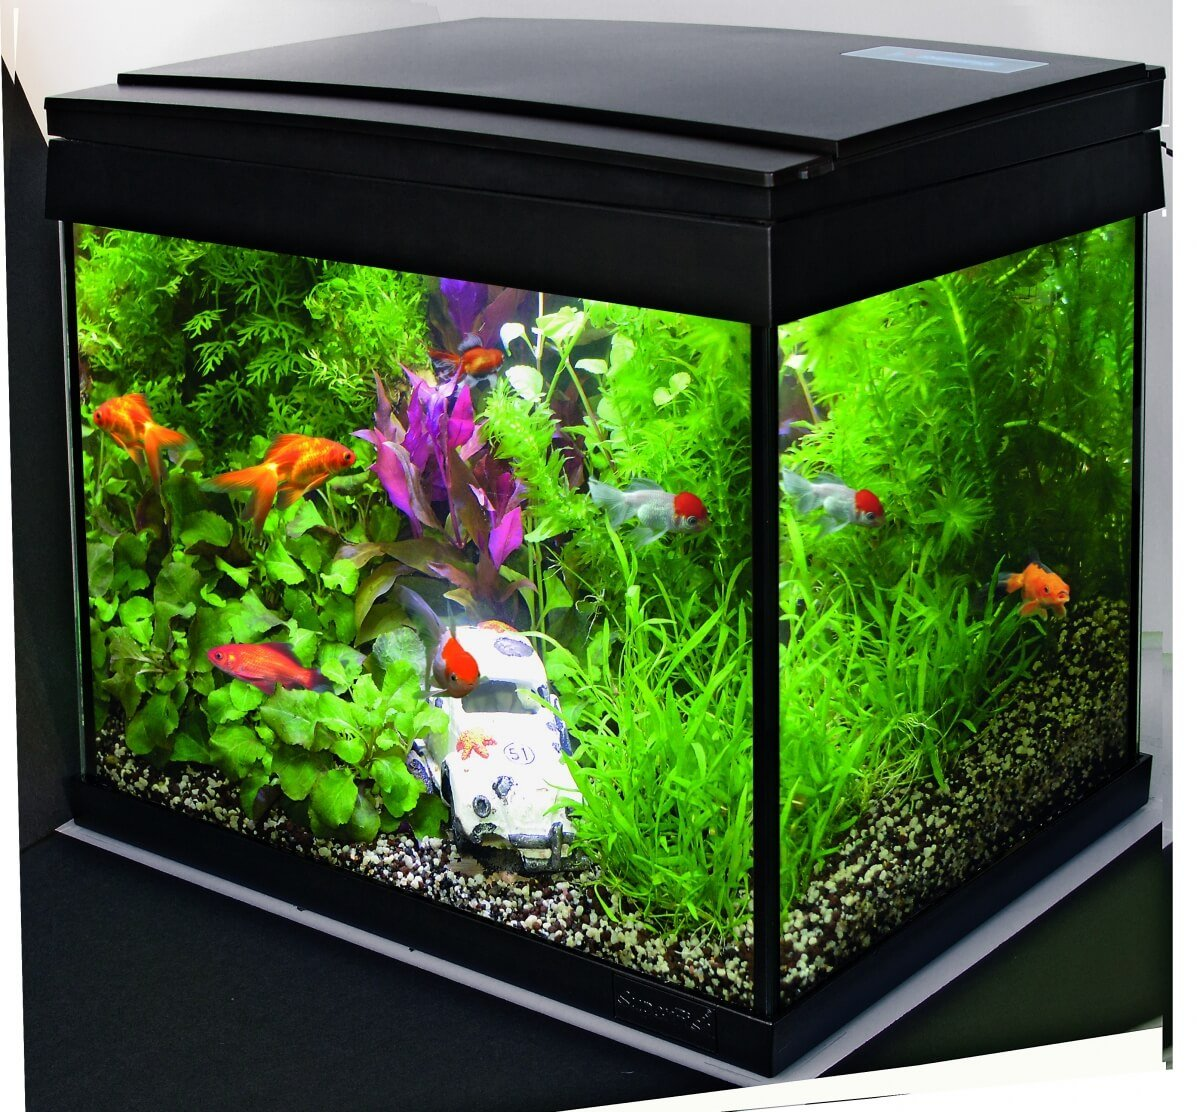 Aquarium aqua 20 led kit poisson rouge aquarium et meuble for Aquarium poisson rouge pas cher